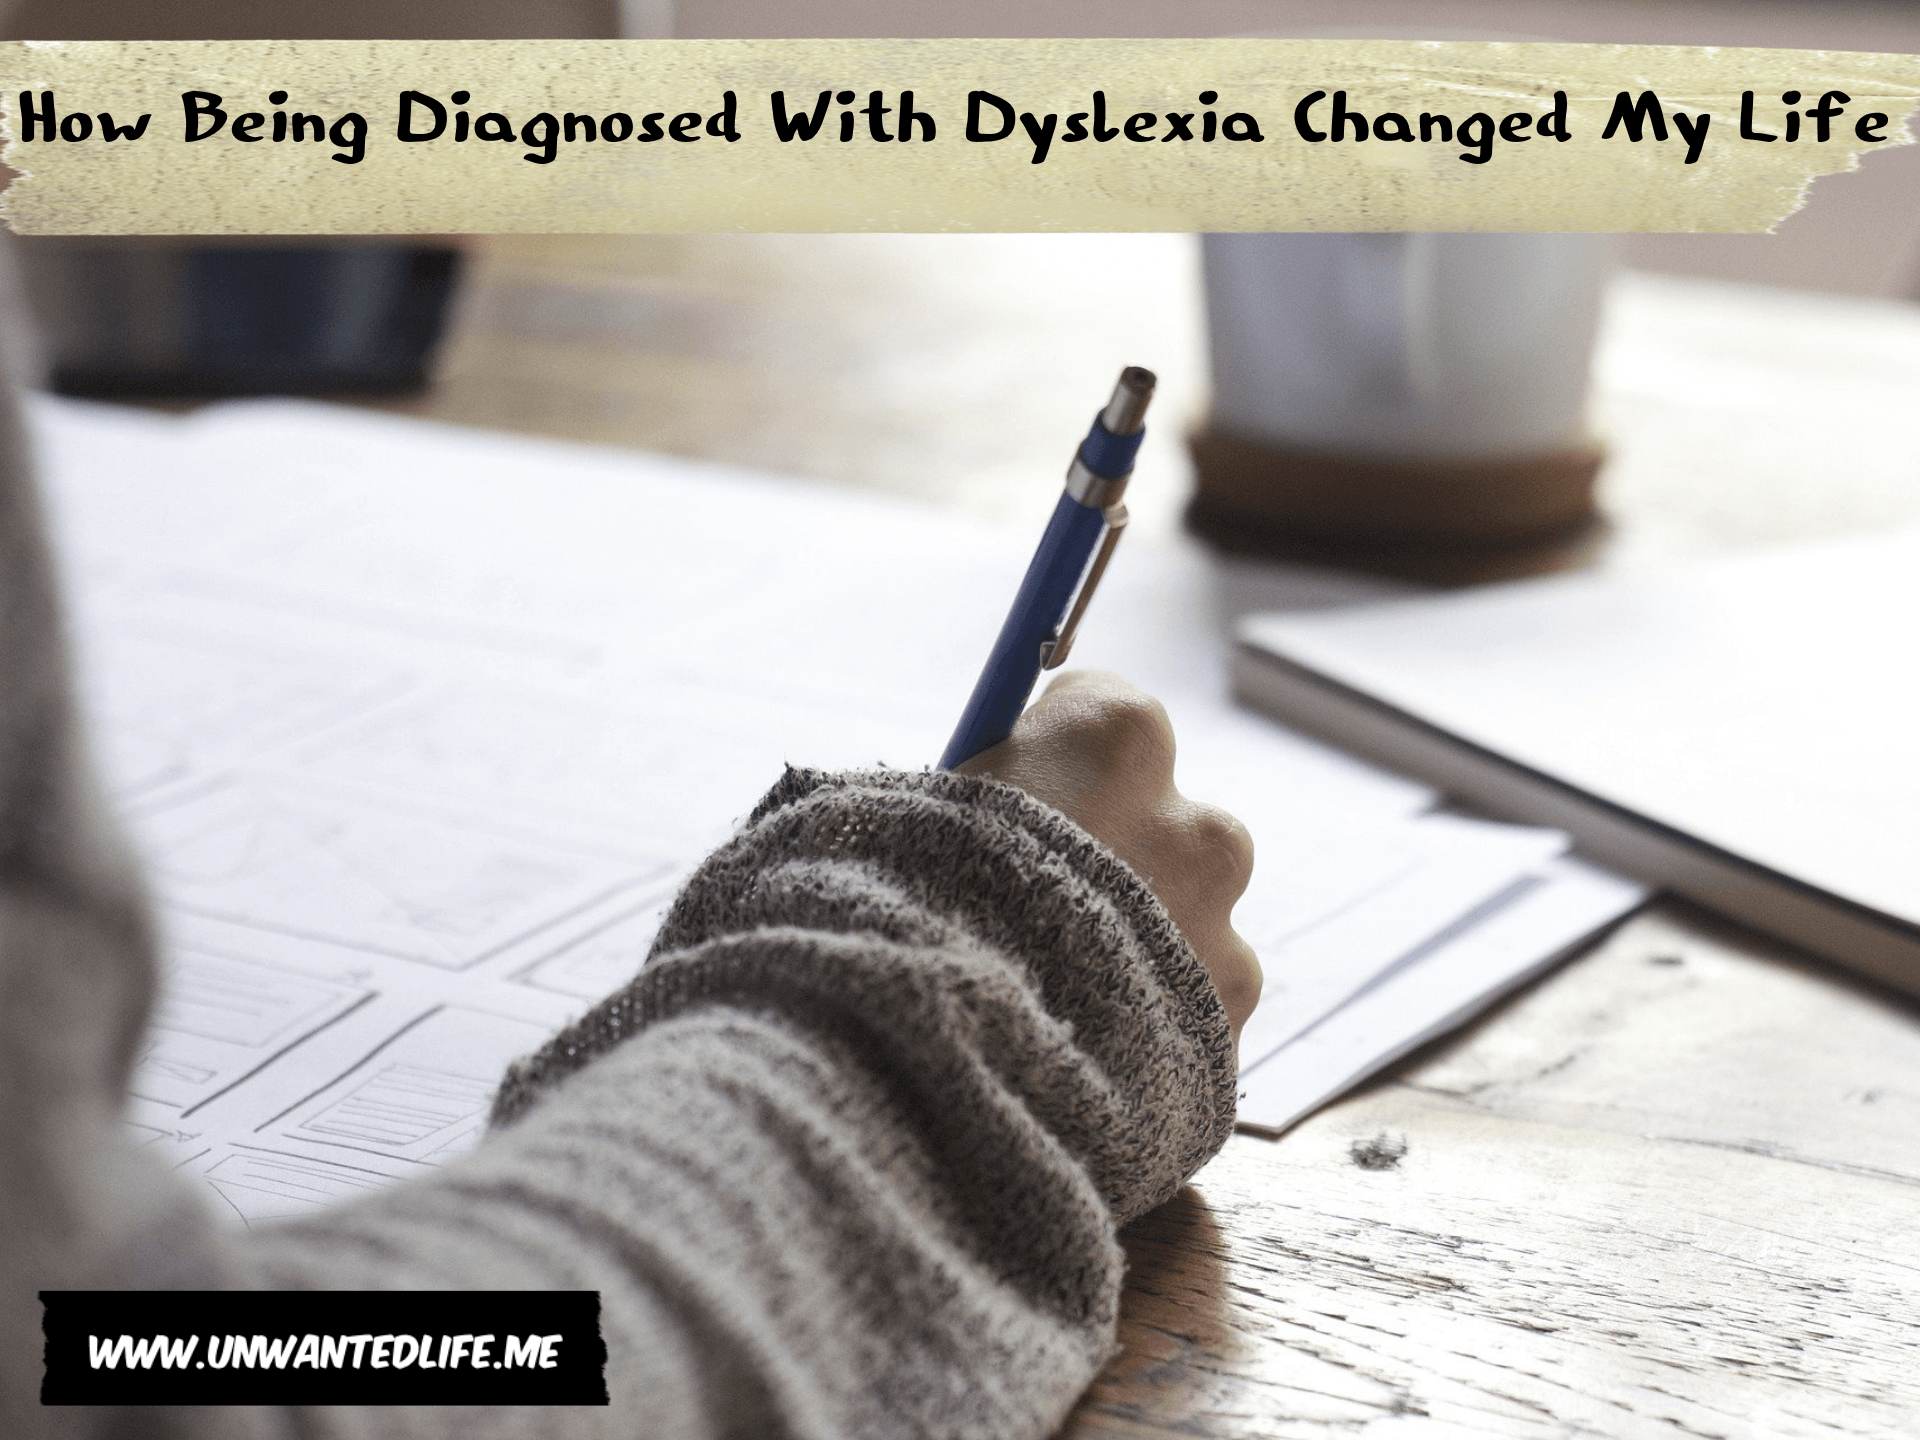 A white person sitting at a table writing to represent the topic of the article - How Being Diagnosed With Dyslexia Changed My Life